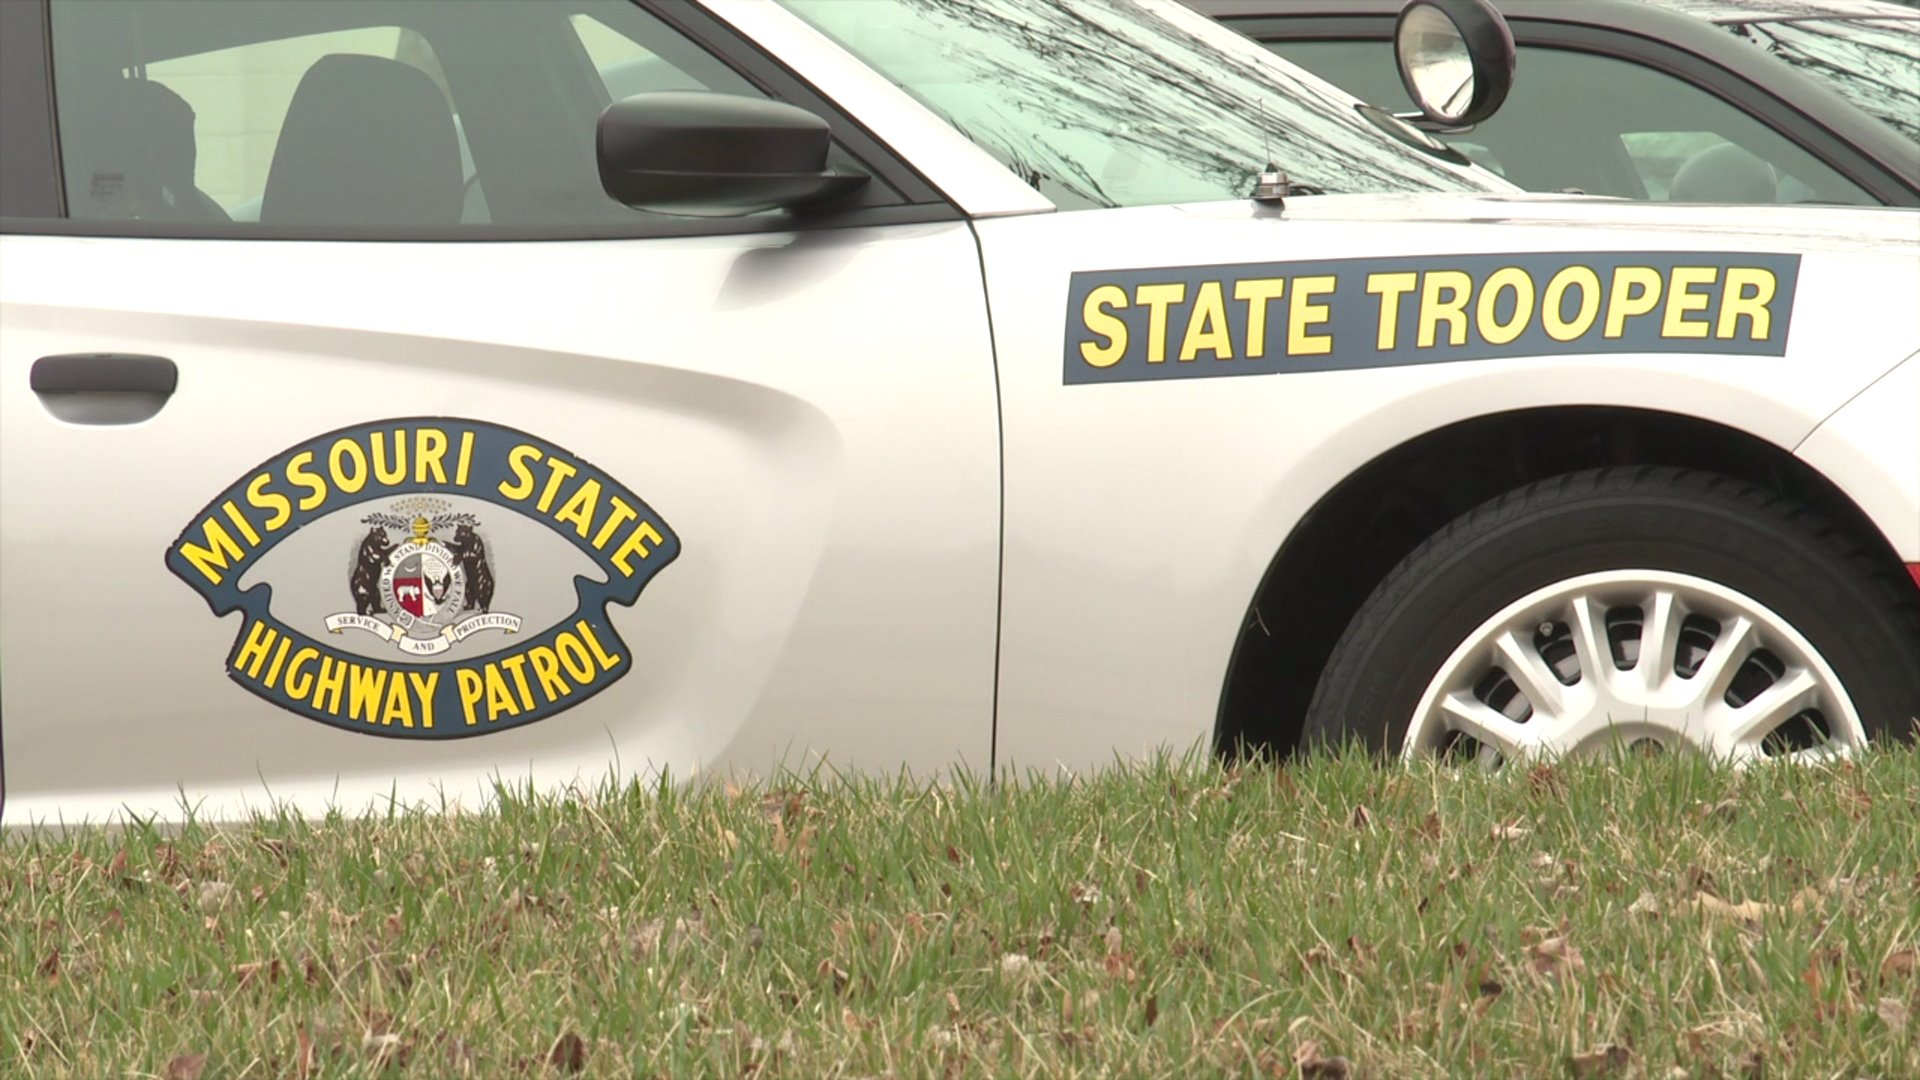 Picture of MSHP car